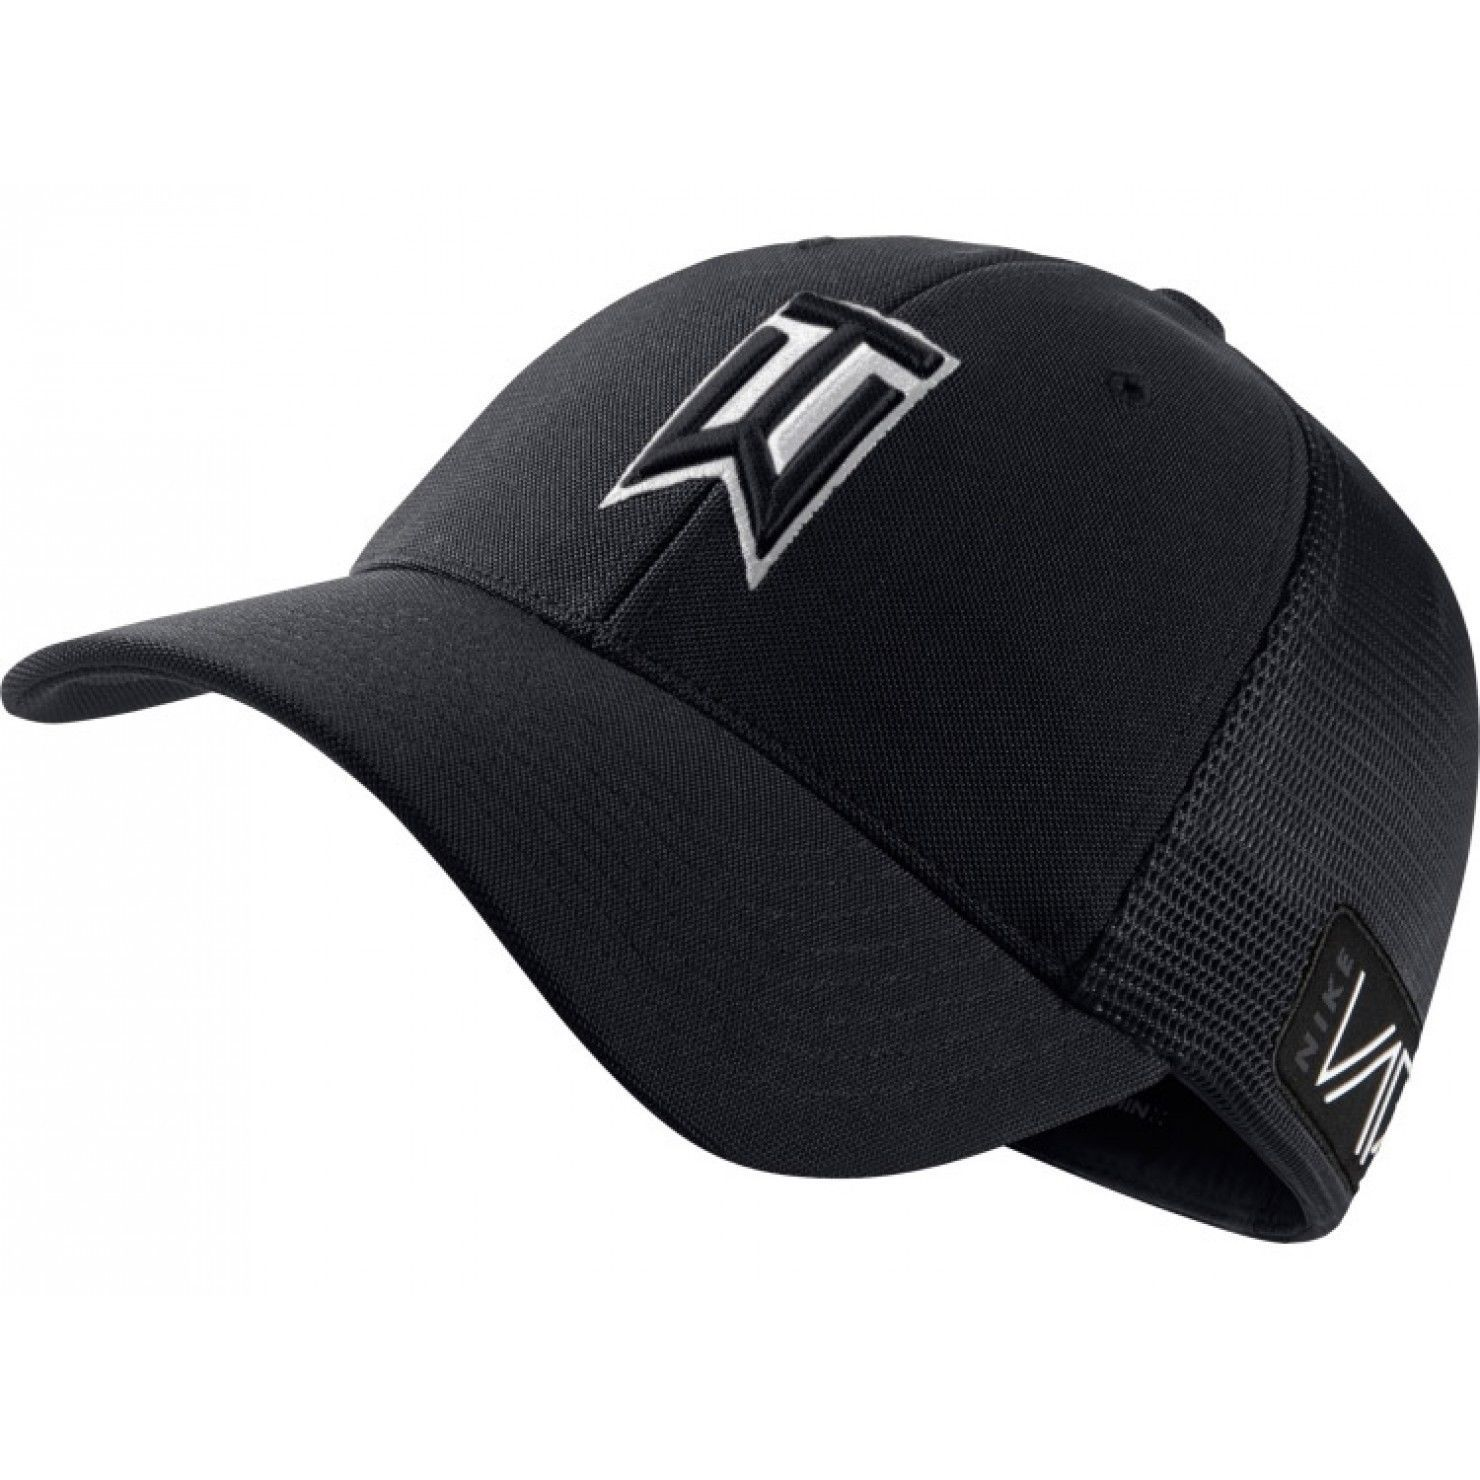 Hats and Headwear 158918  New! Black  S M  Tiger Woods Tw Nike Men ... 293c4f9e4ce8